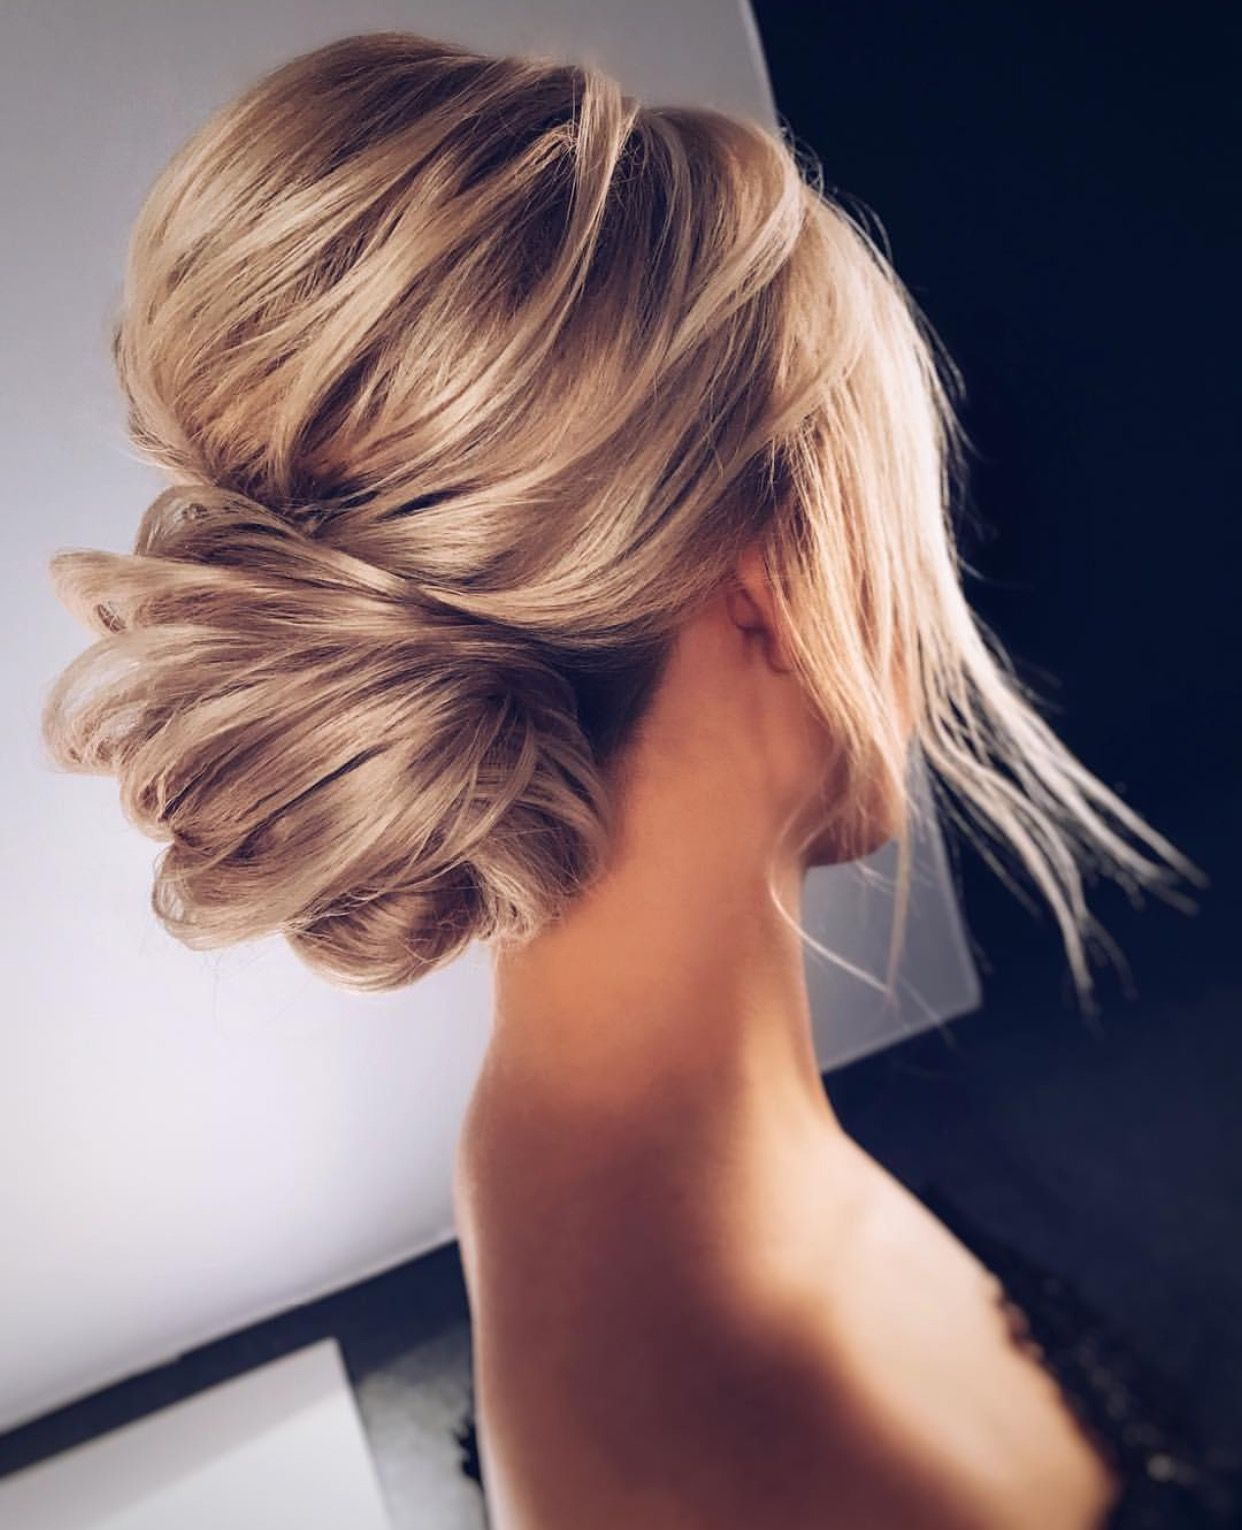 Pin by heba filobbos on hair pinterest updo hair style and prom